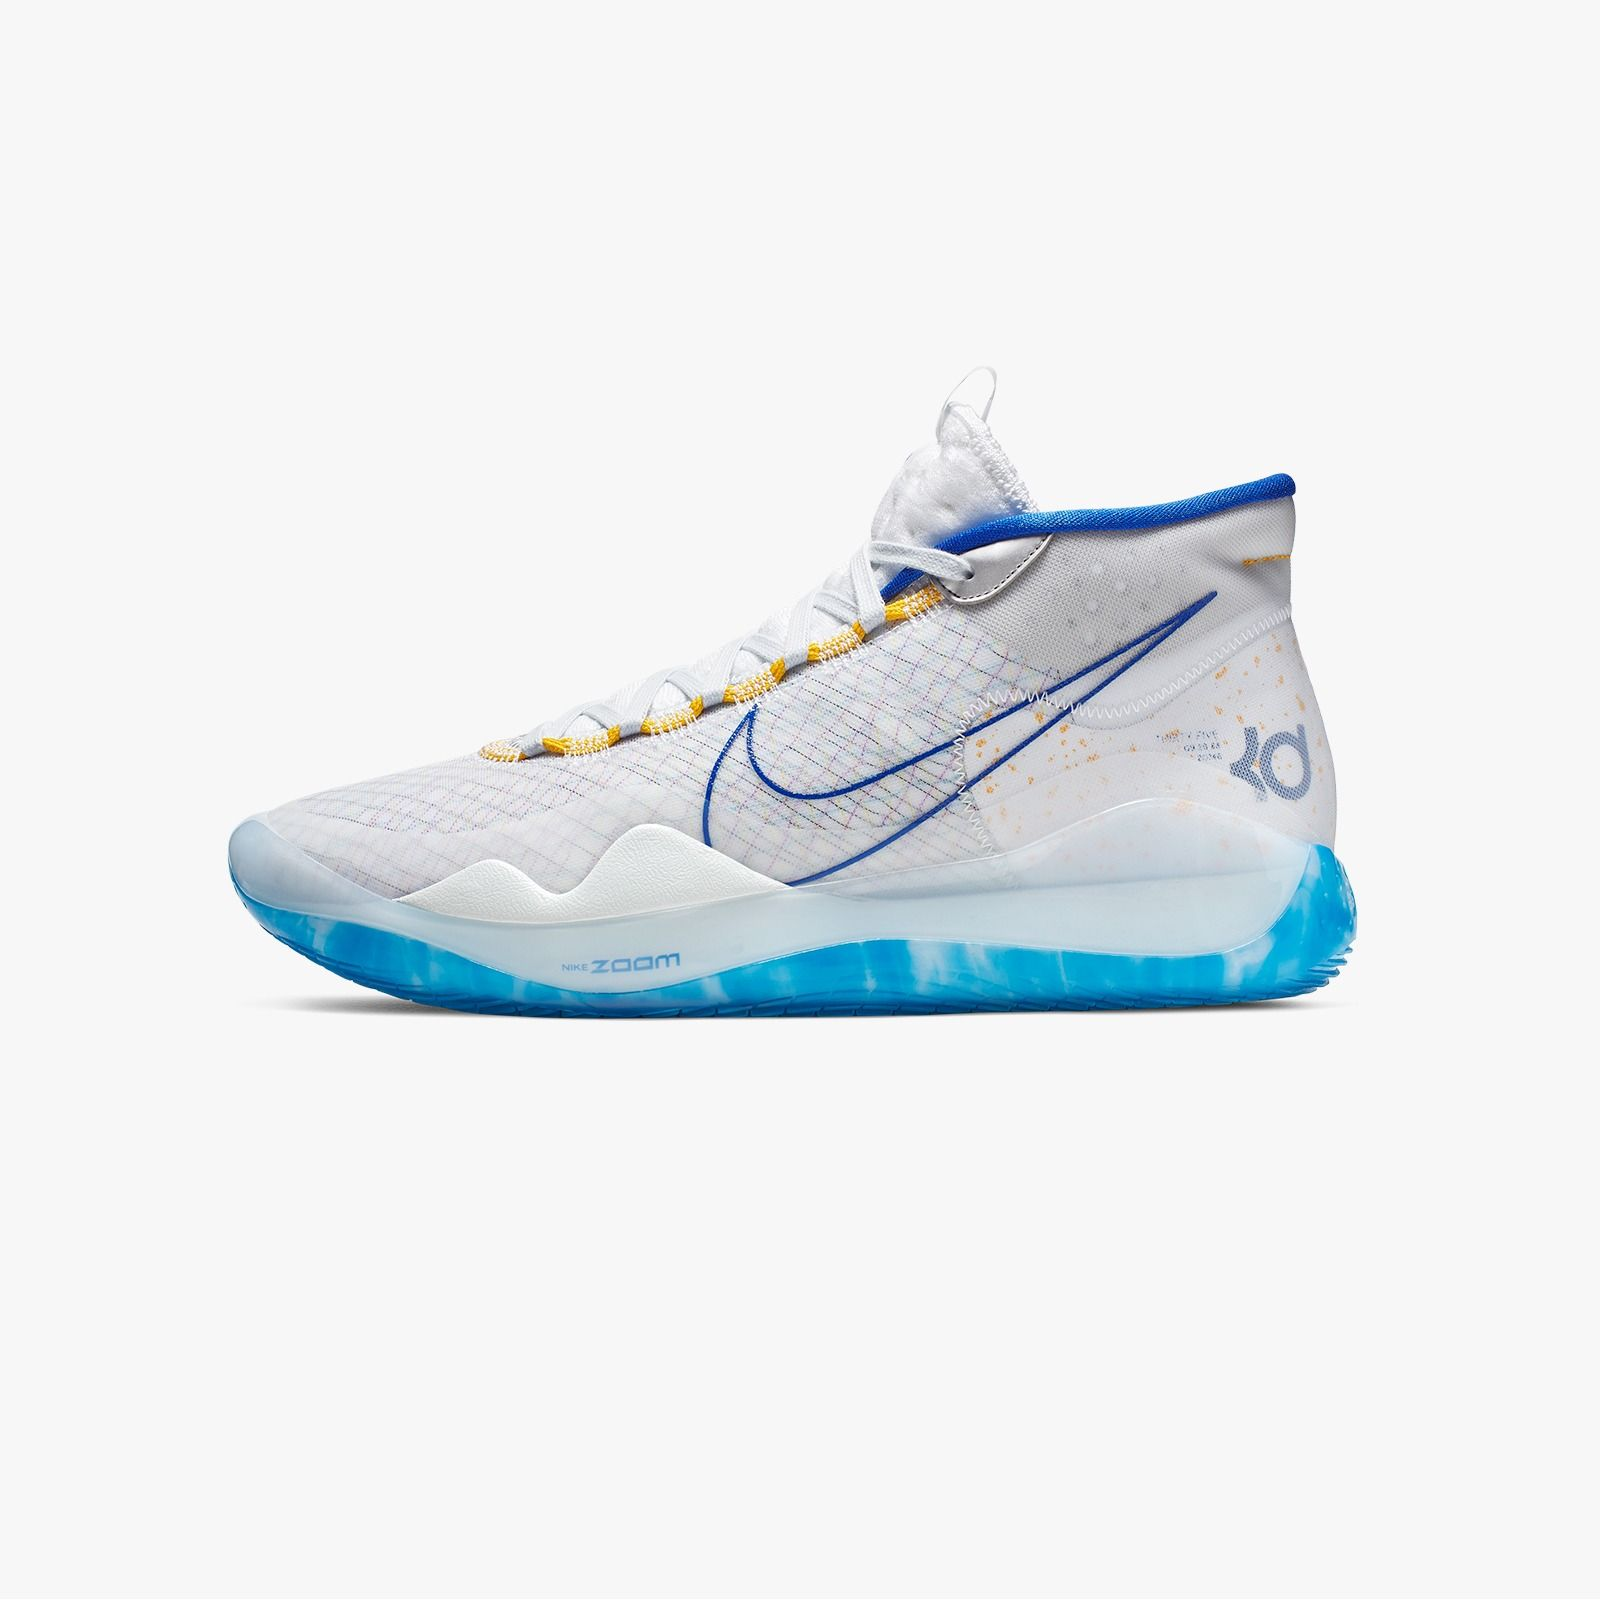 Nike Zoom Kd12 In Home Golden State Warriors Colorway Eukicks Best Basketball Shoes Golden State Warriors Nike Zoom